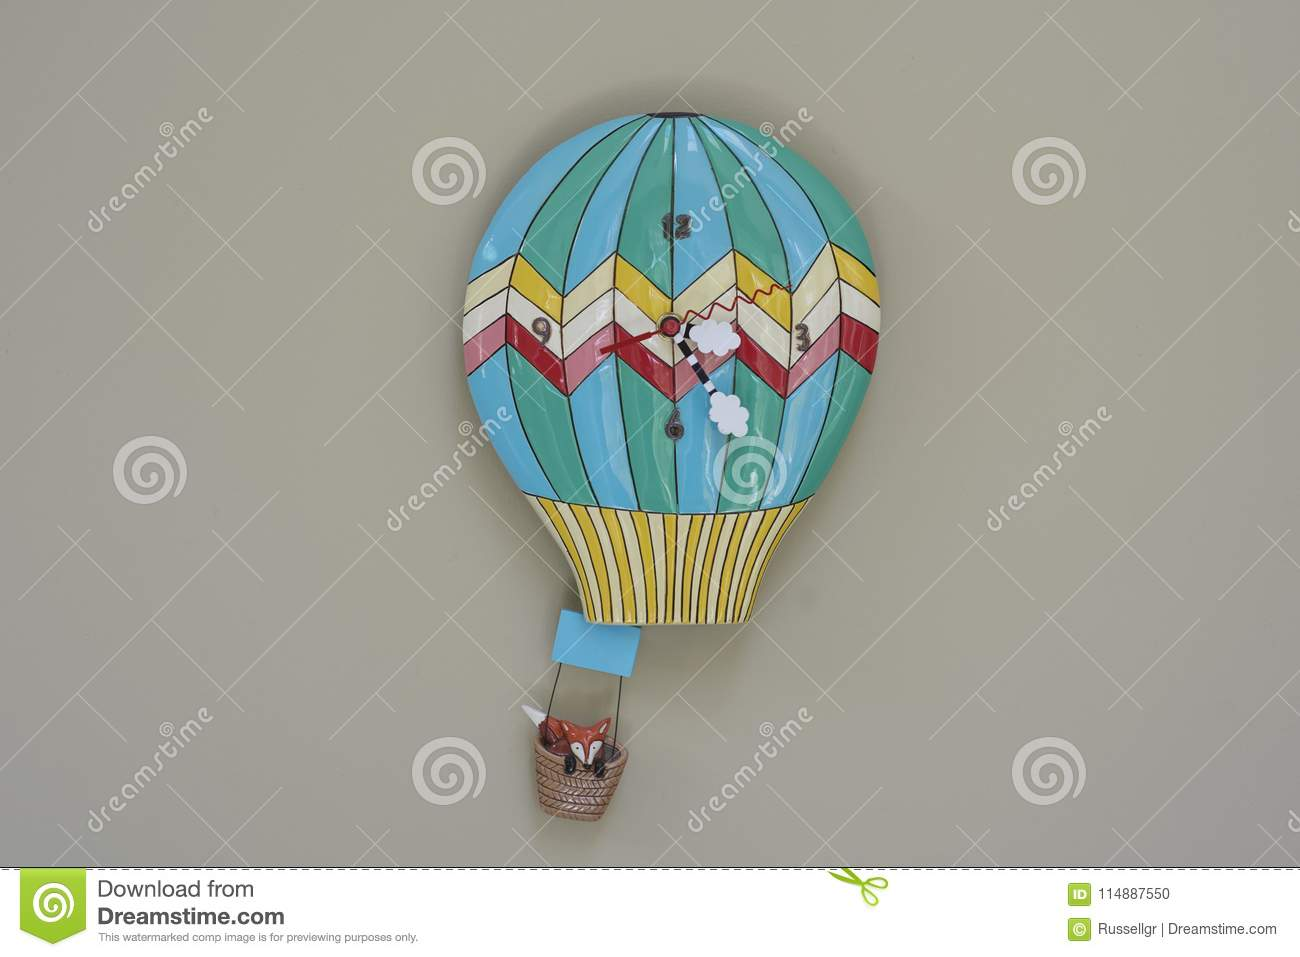 Hot Air Balloon Wall Clock In Kitchen Stock Photo - Image of ...